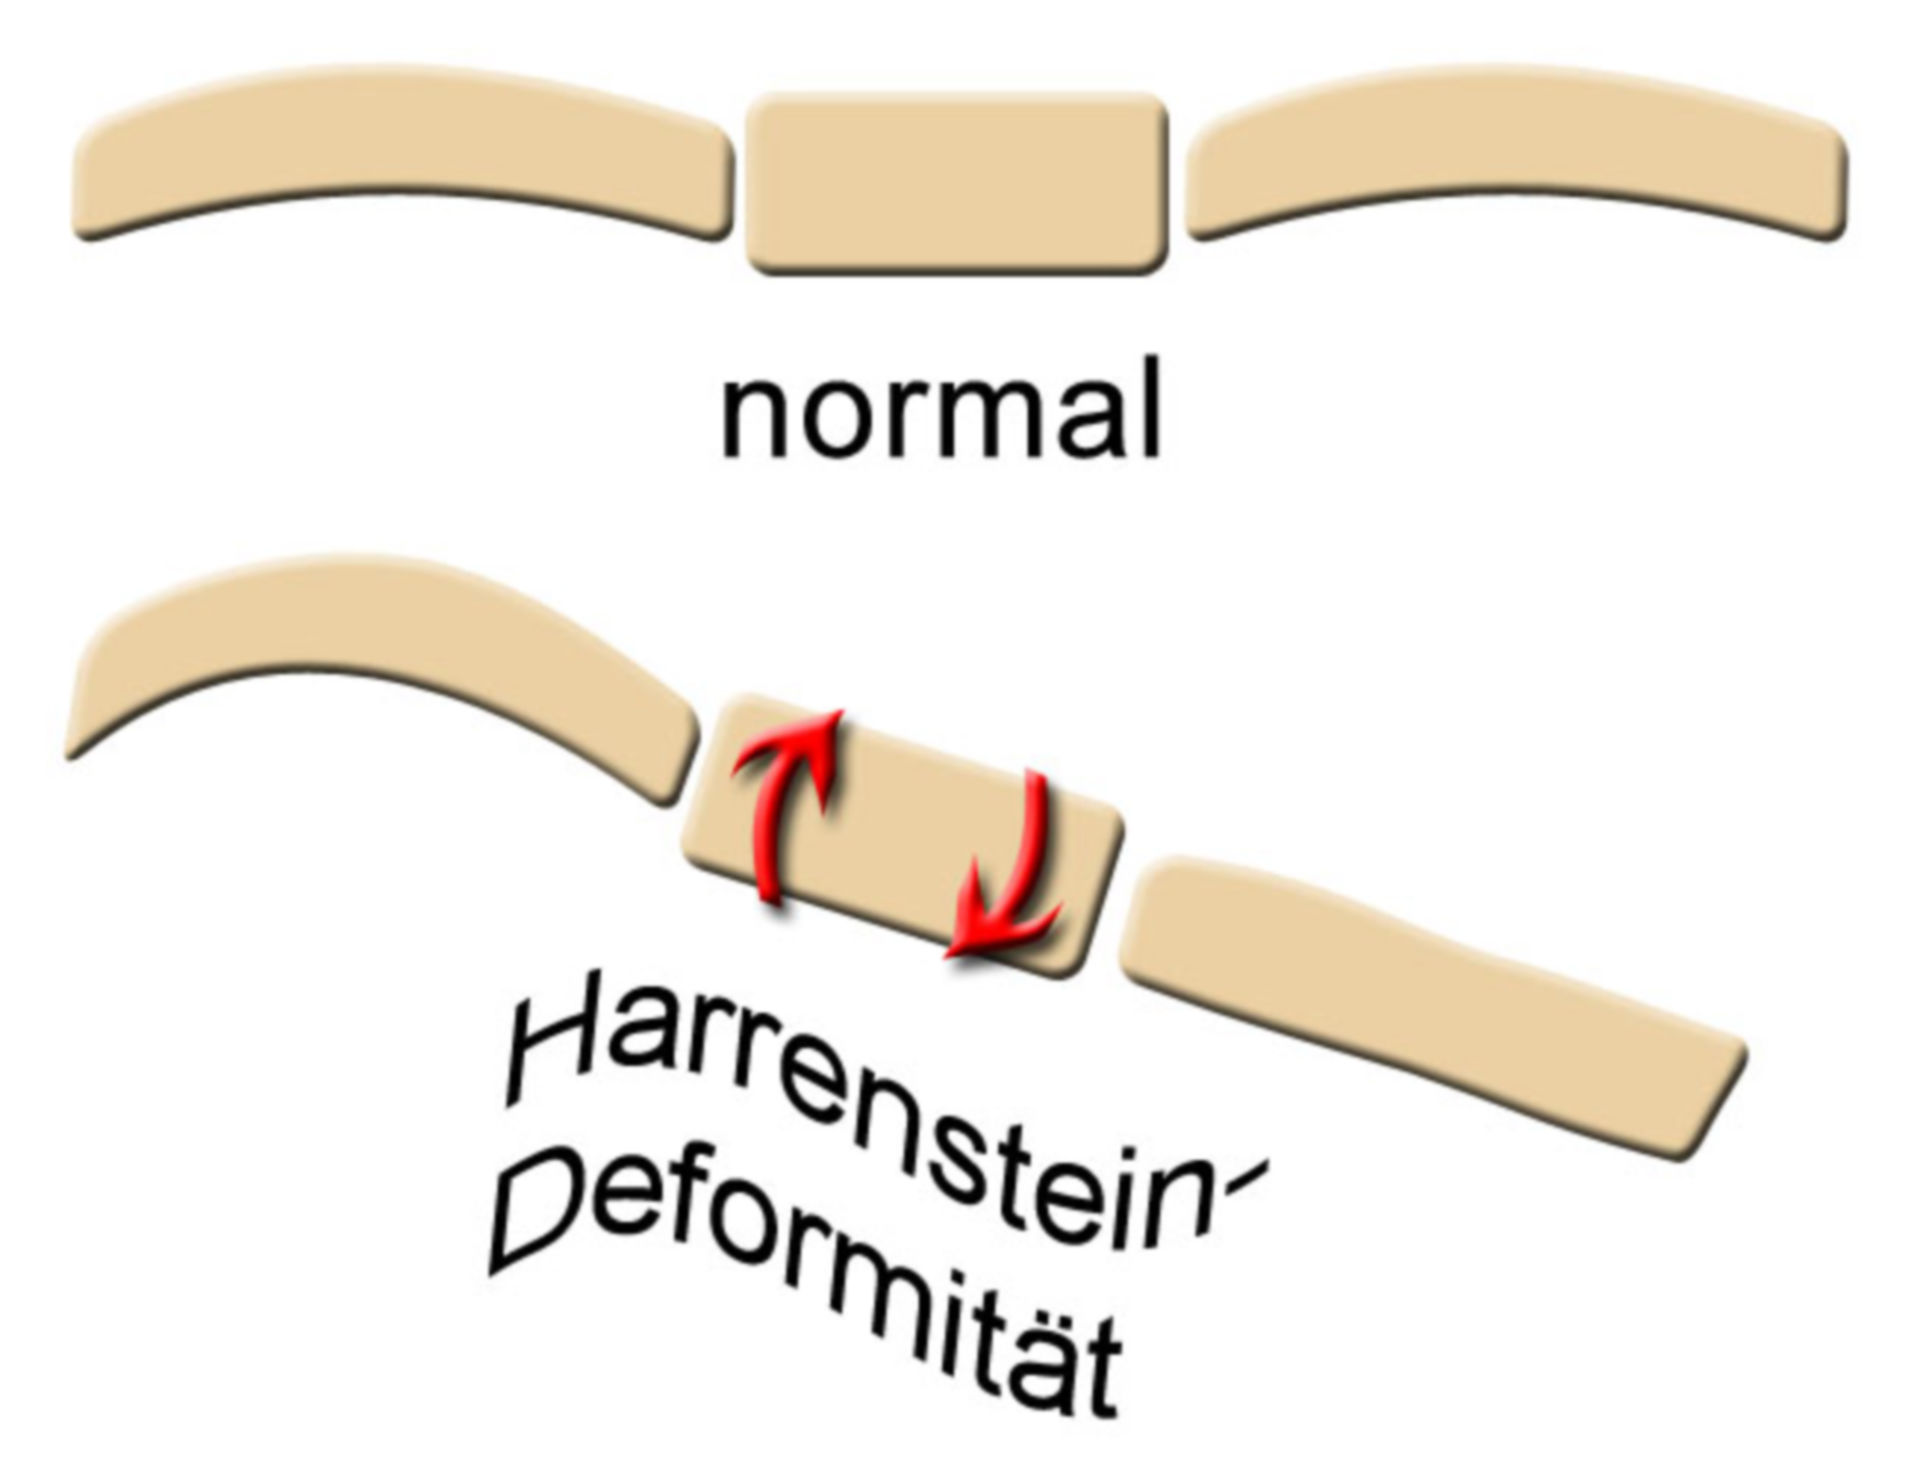 Harrenstein's deformity